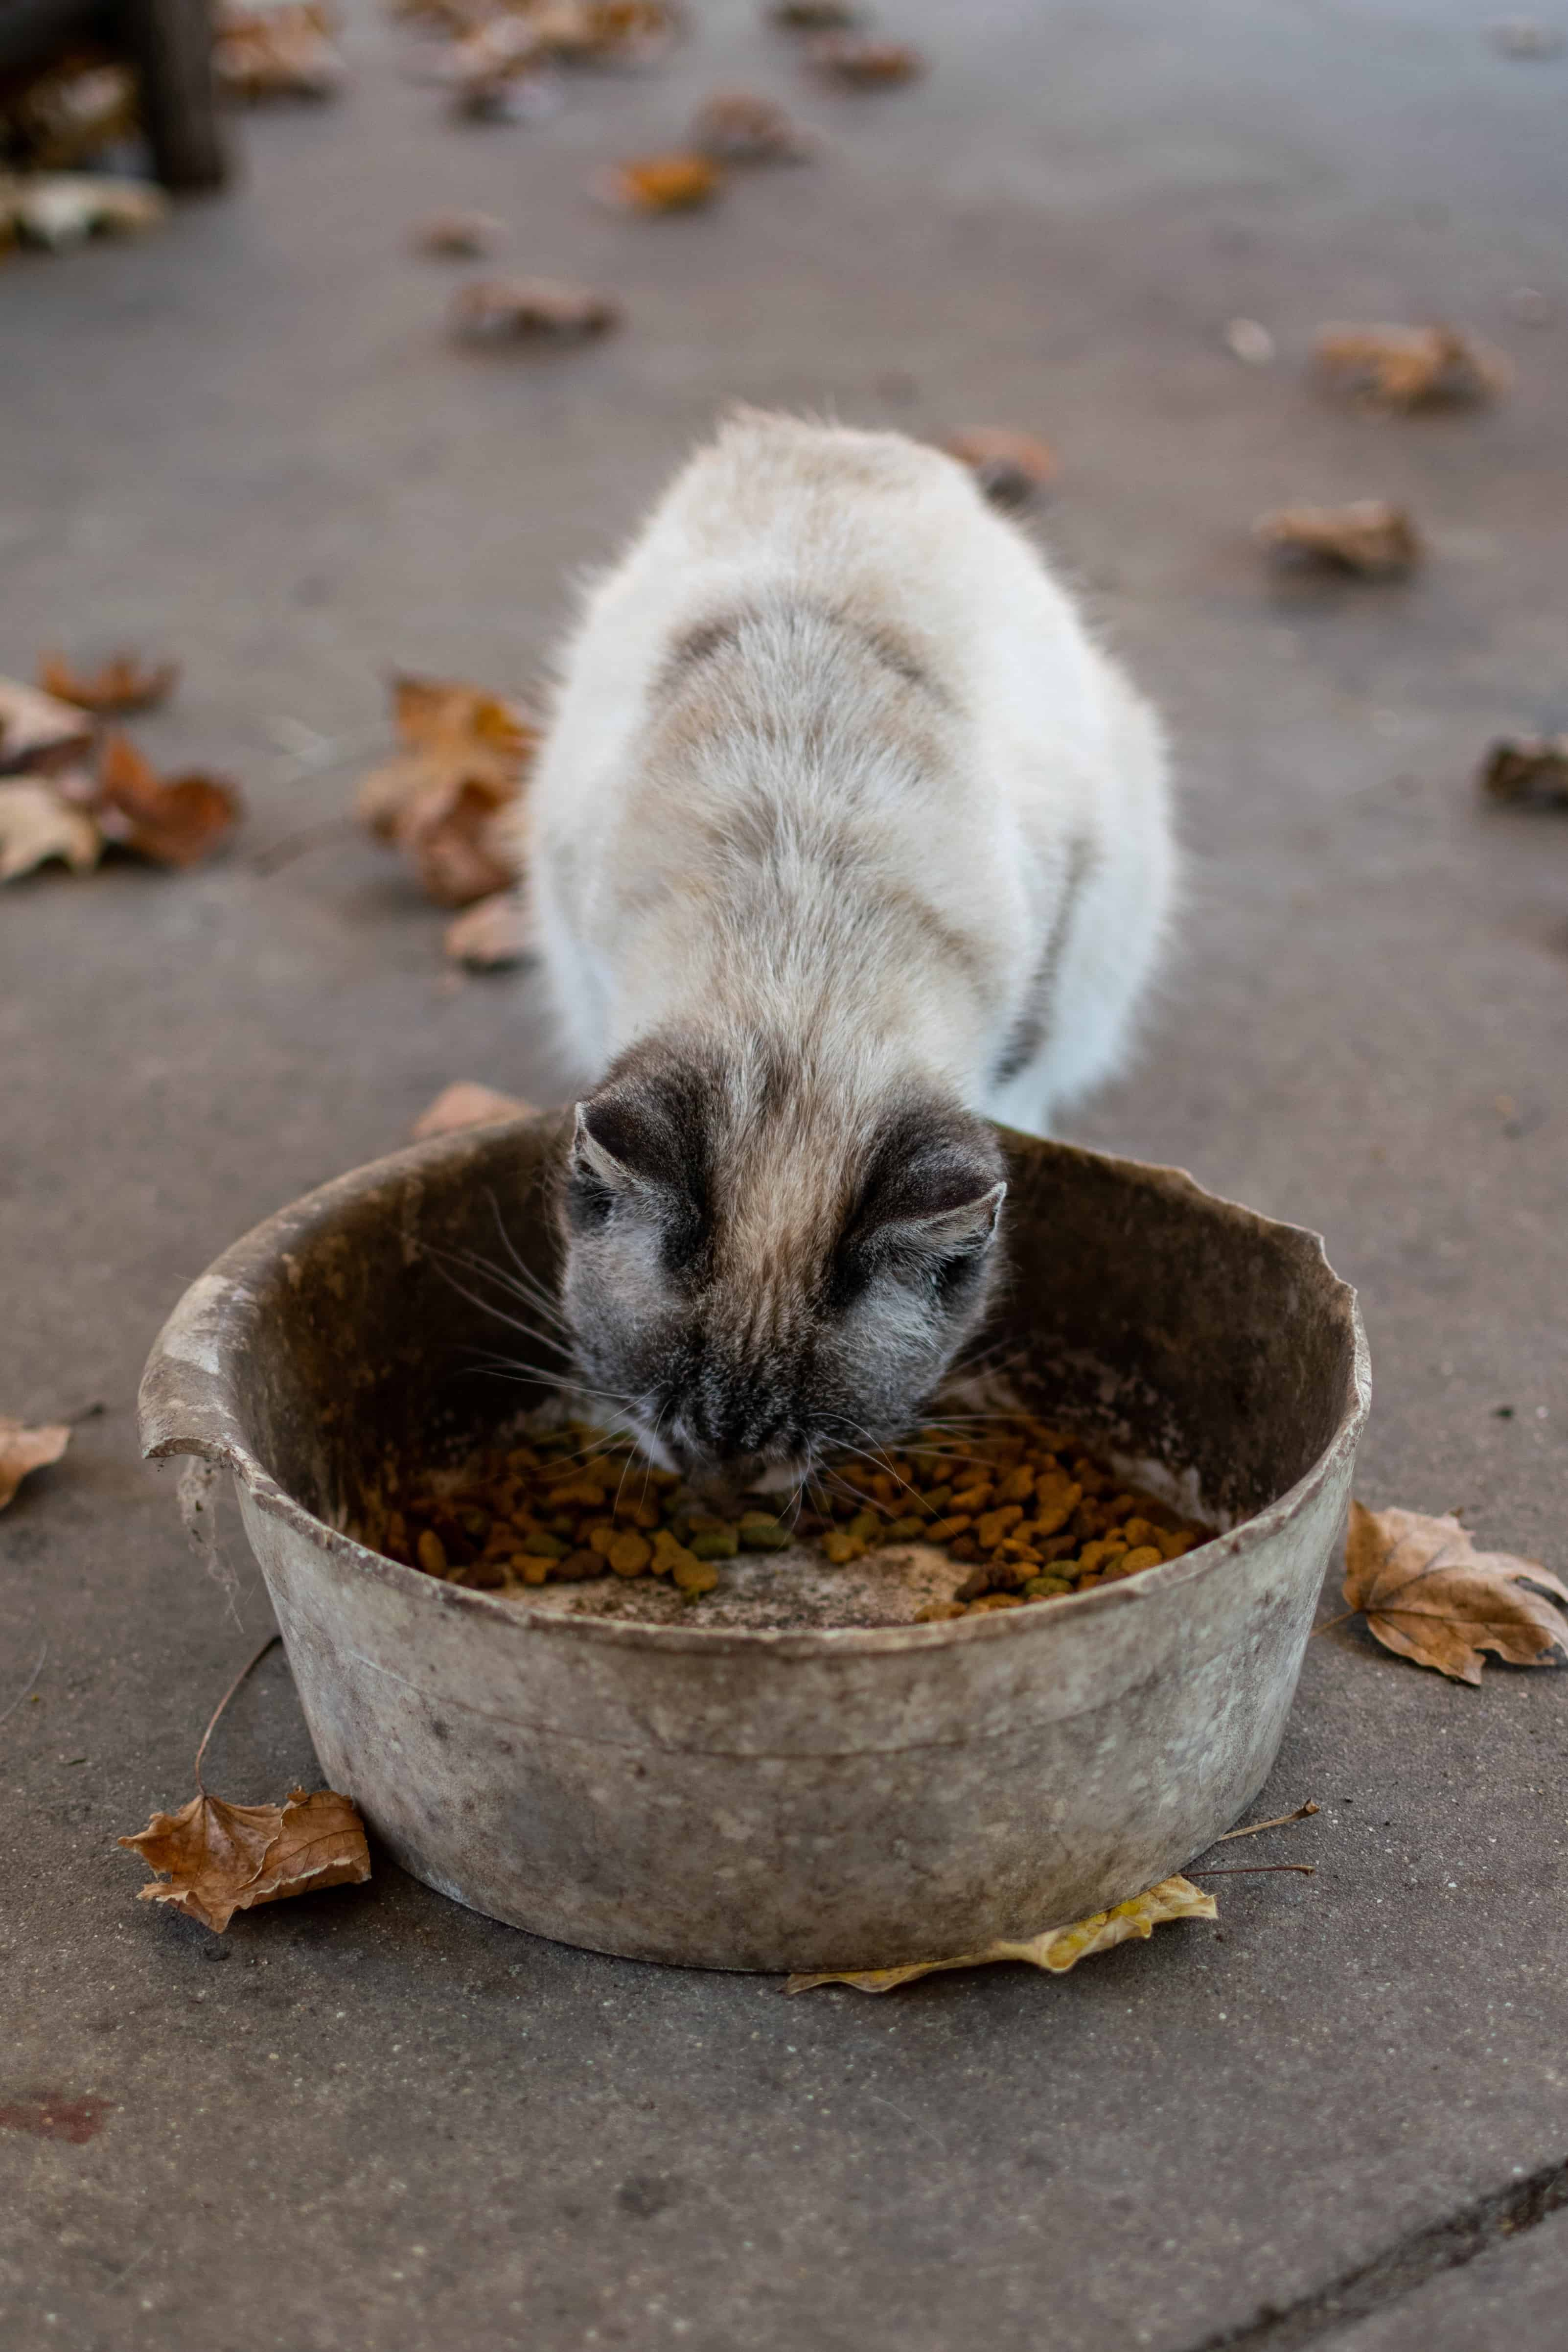 How Much Wet Food Should I Feed My Cat?